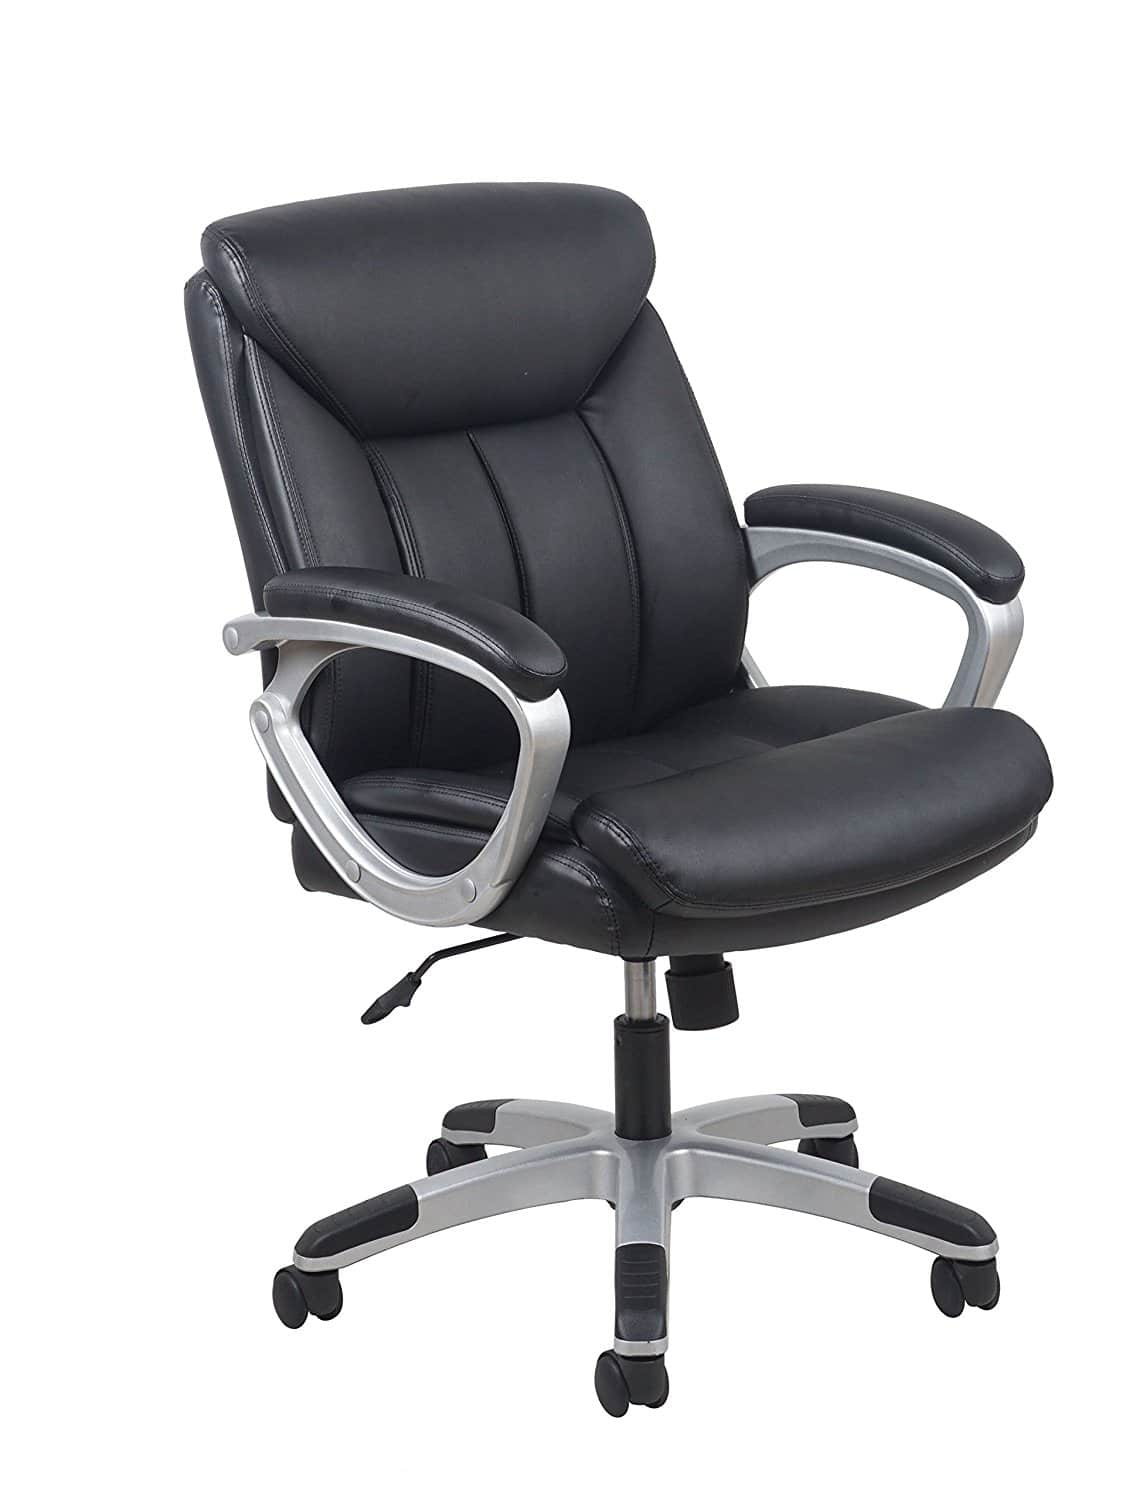 Ergonomic Chair Top 10 Best Ergonomic Office Chairs In 2018 September 2018